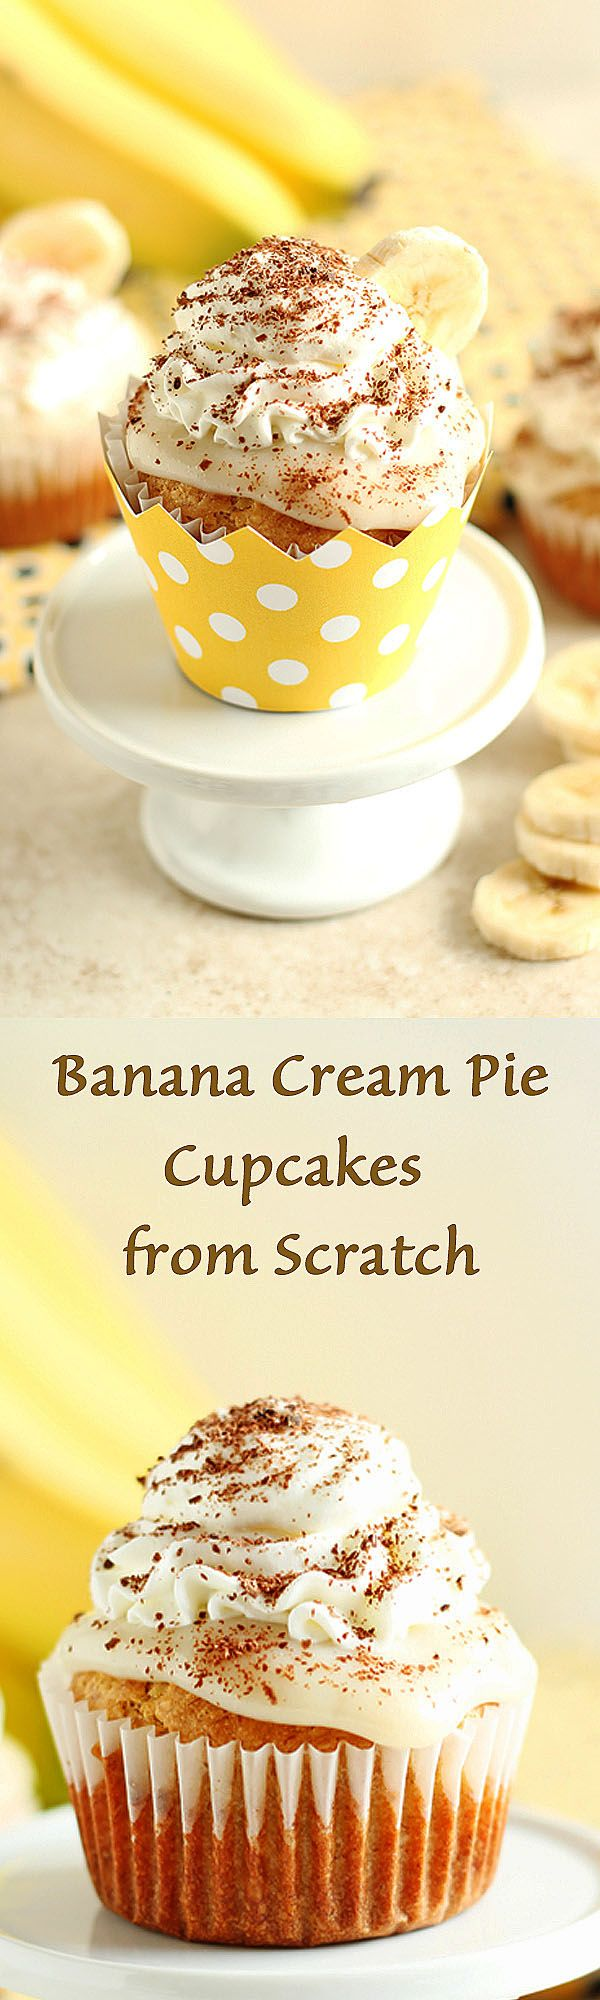 Banana Cream Pie Cupcakes from Scratch - Fluffy and moist banana cream pie cupcakes made from scratch with delicious vanilla pudding and whipped cream frosting. Perfect recipe for a party! by ilonaspa